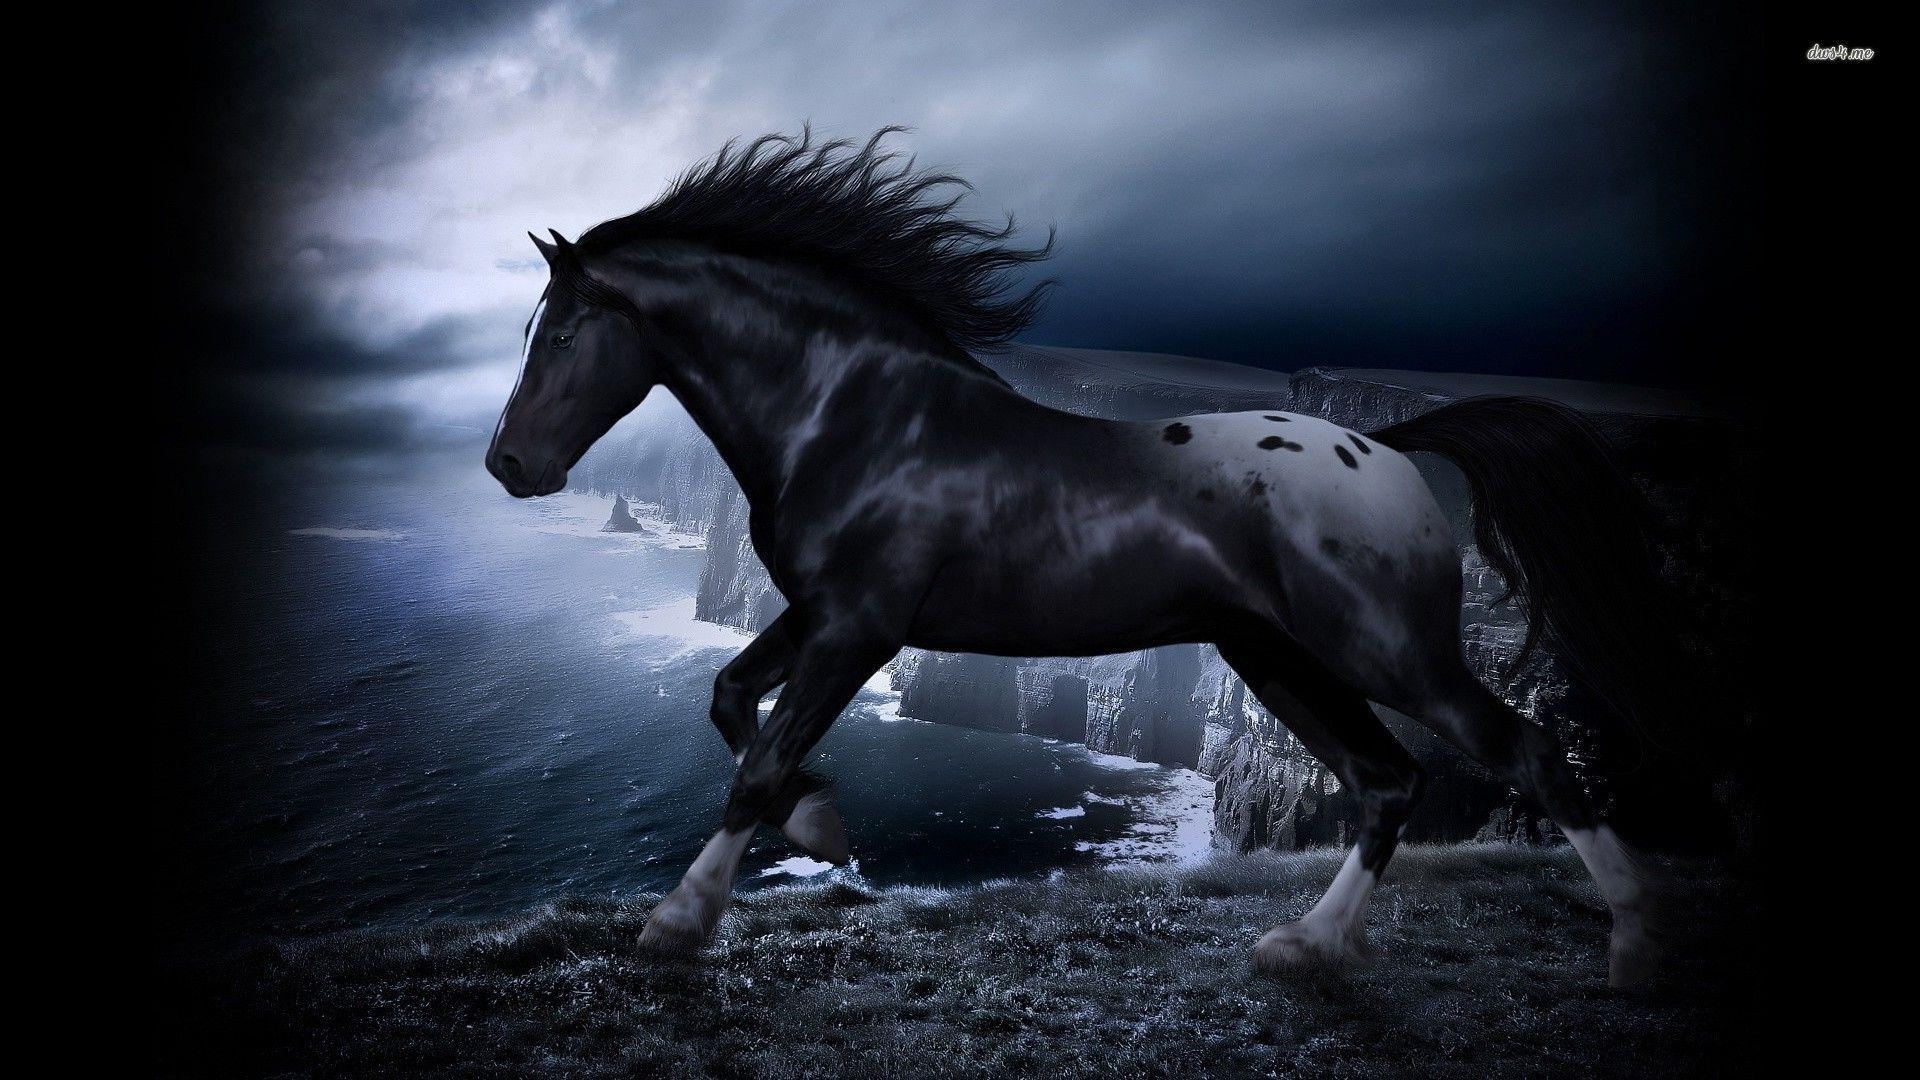 Black And White Horse Wallpapers Top Free Black And White Horse